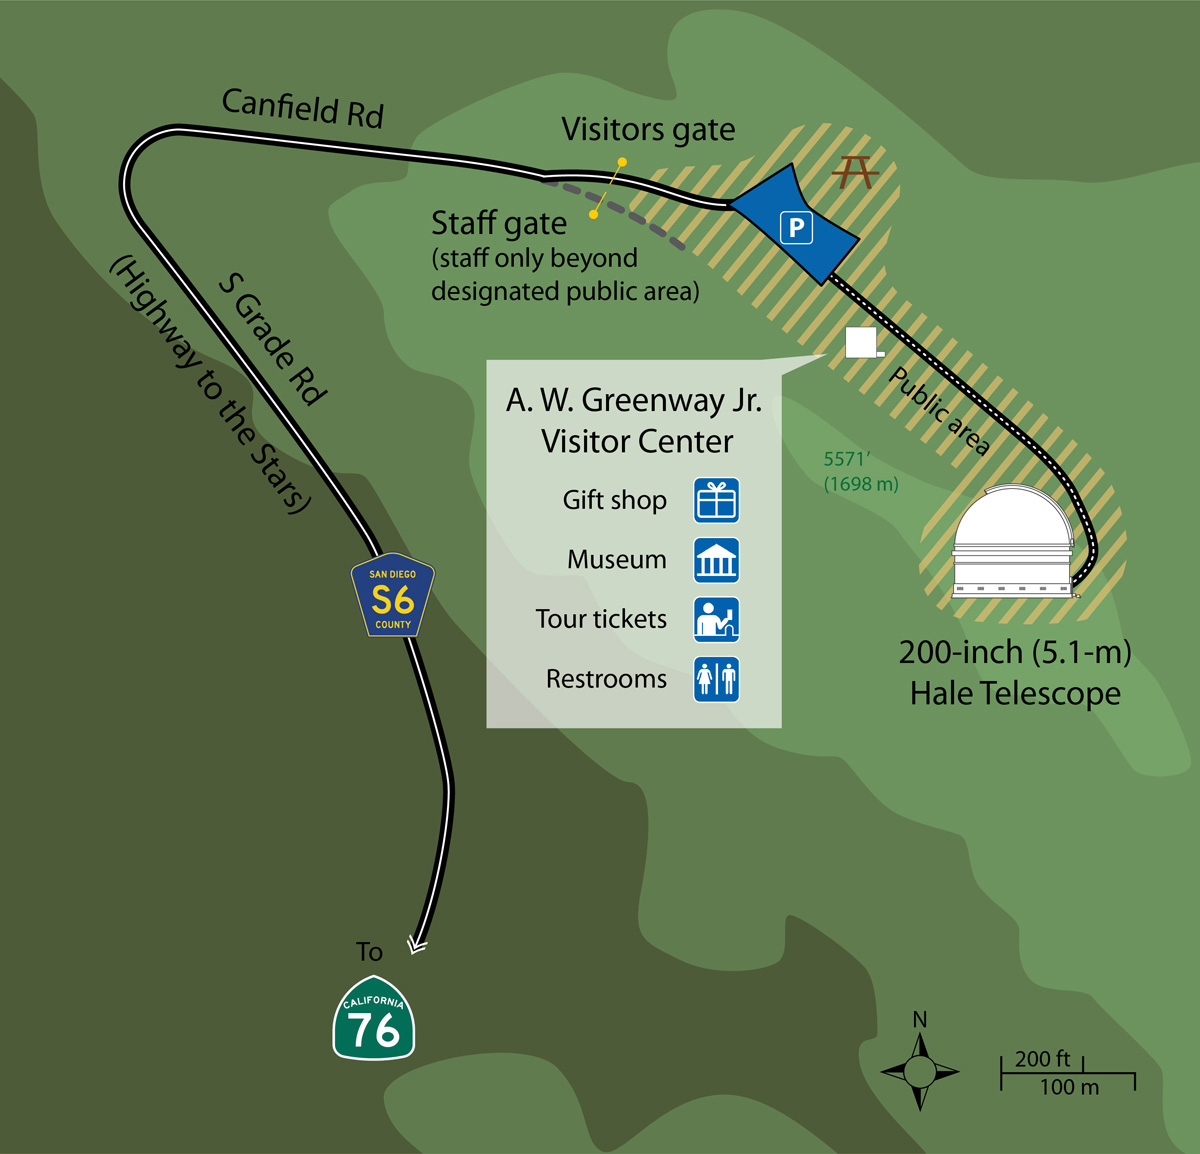 Driving Directions to Palomar Observatory Map of Southern California and Palomar Observatory   Palomar Caltech